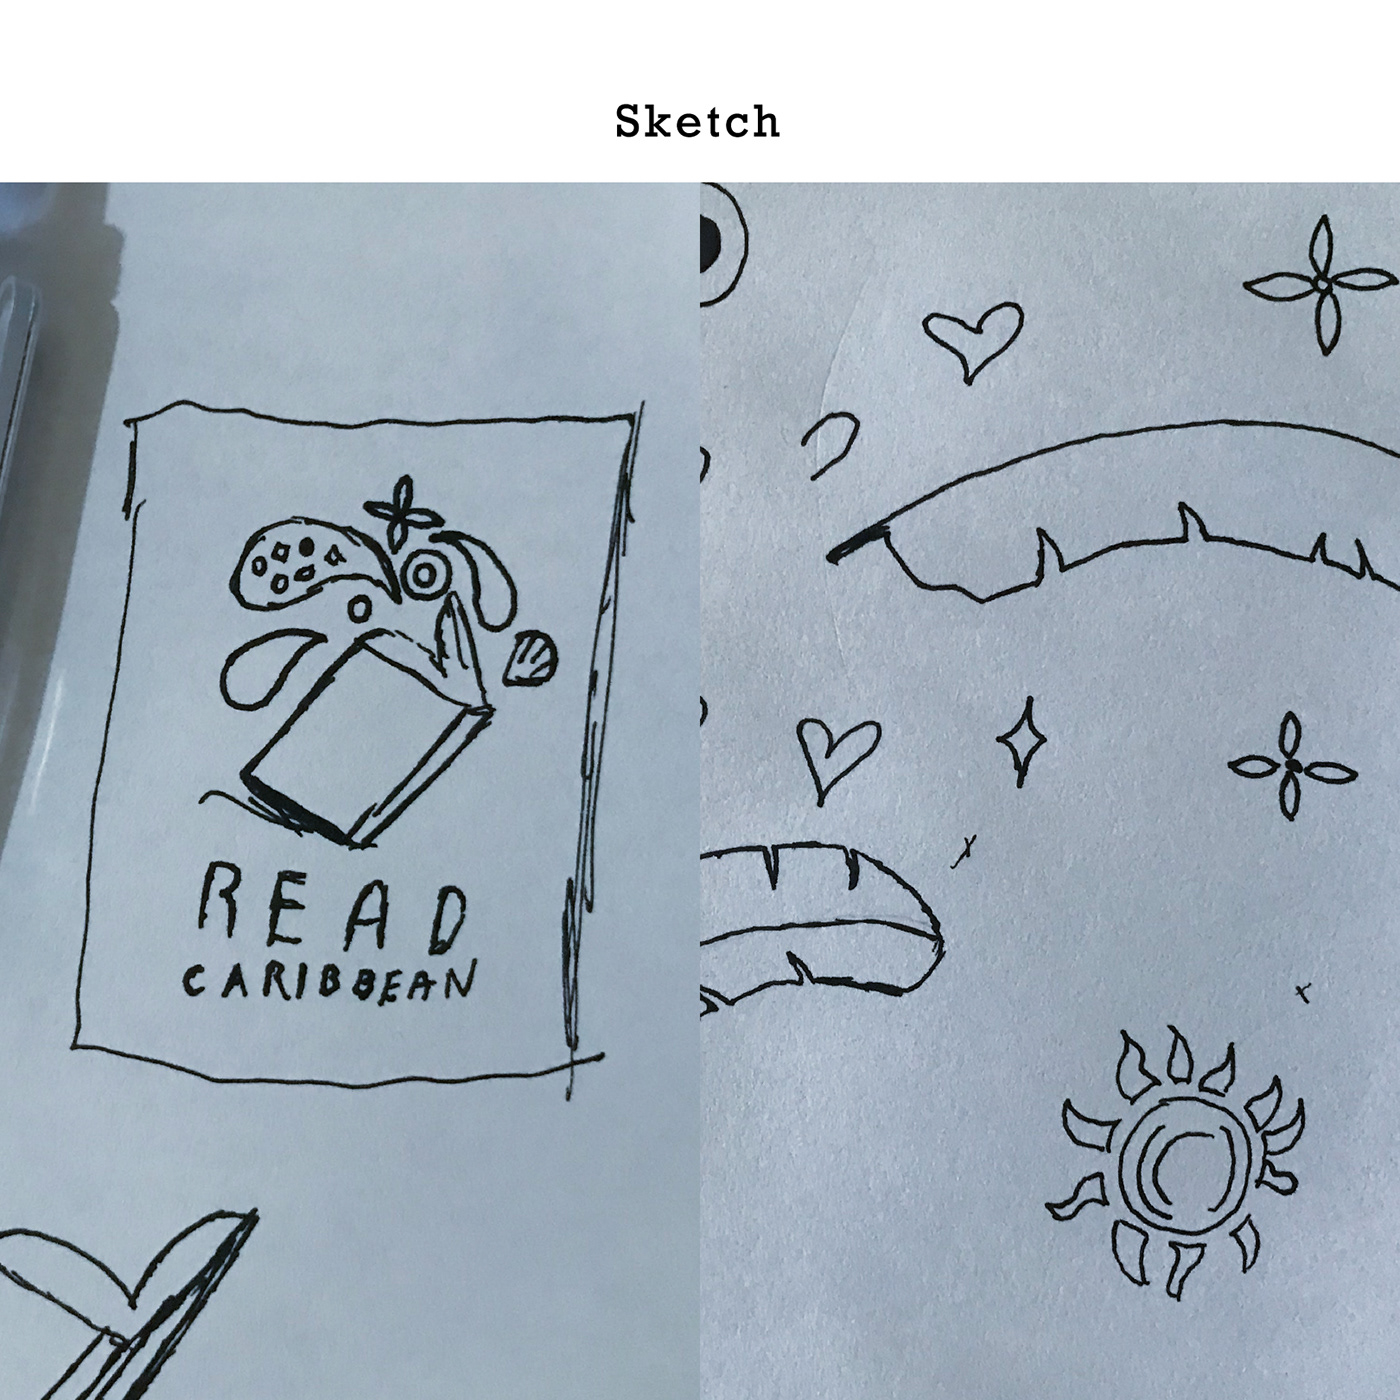 The rough initial sketches for Read Caribbean